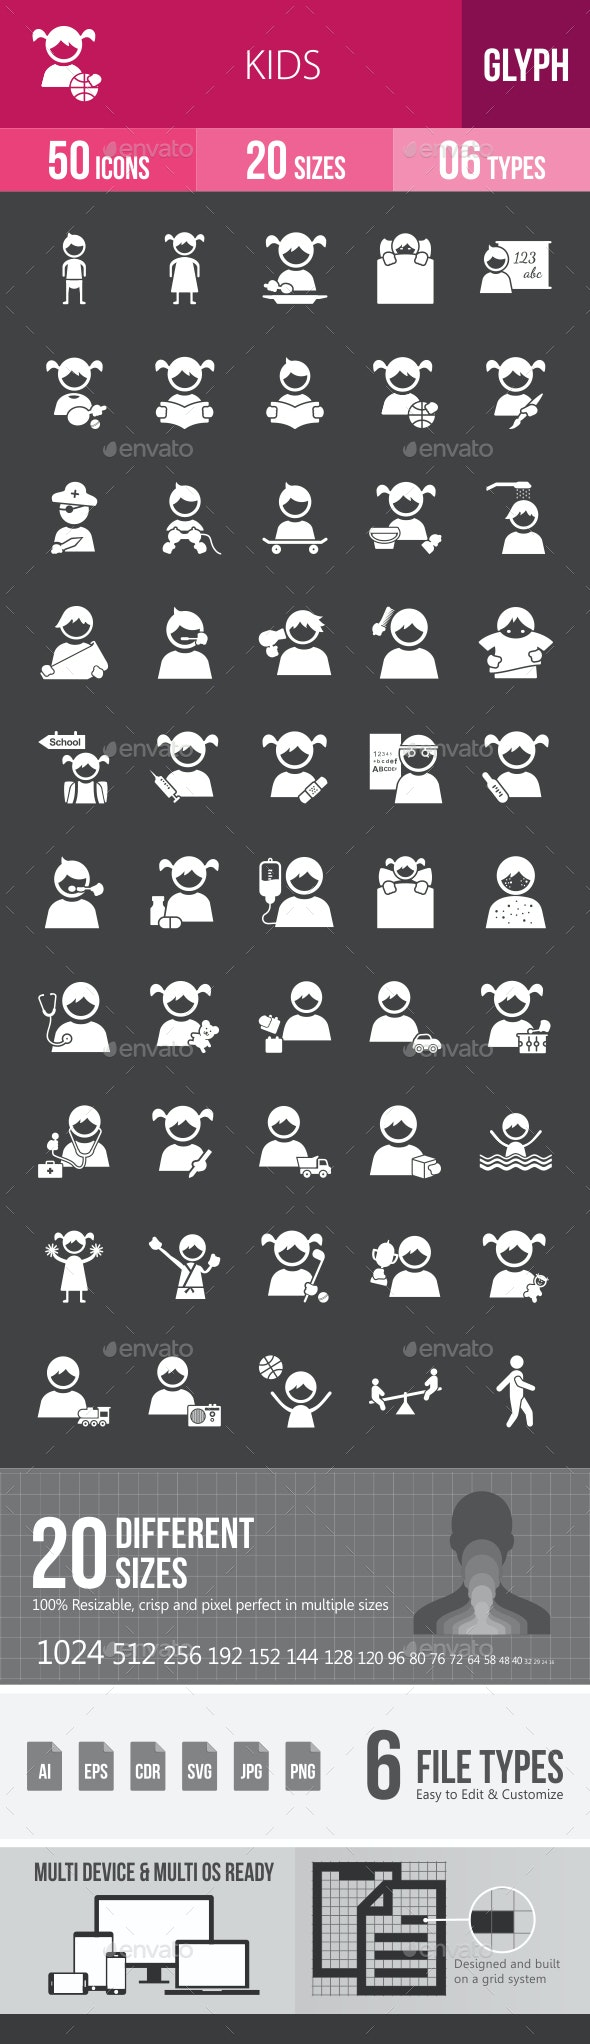 Kids Glyph Inverted Icons - Icons